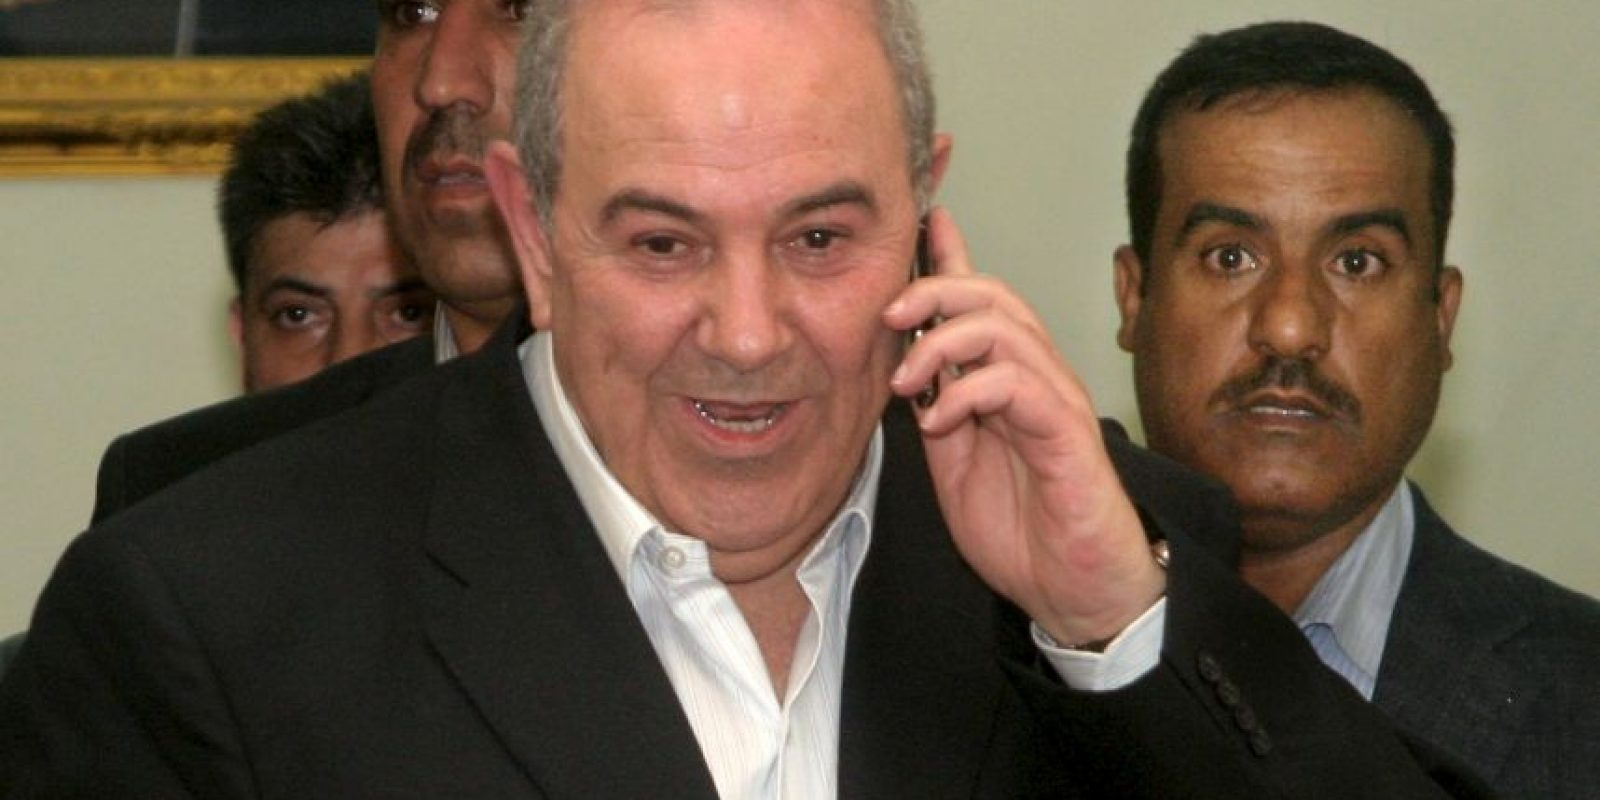 Ayad Allawi, exprimer ministro de Iraq. Foto: Getty Images